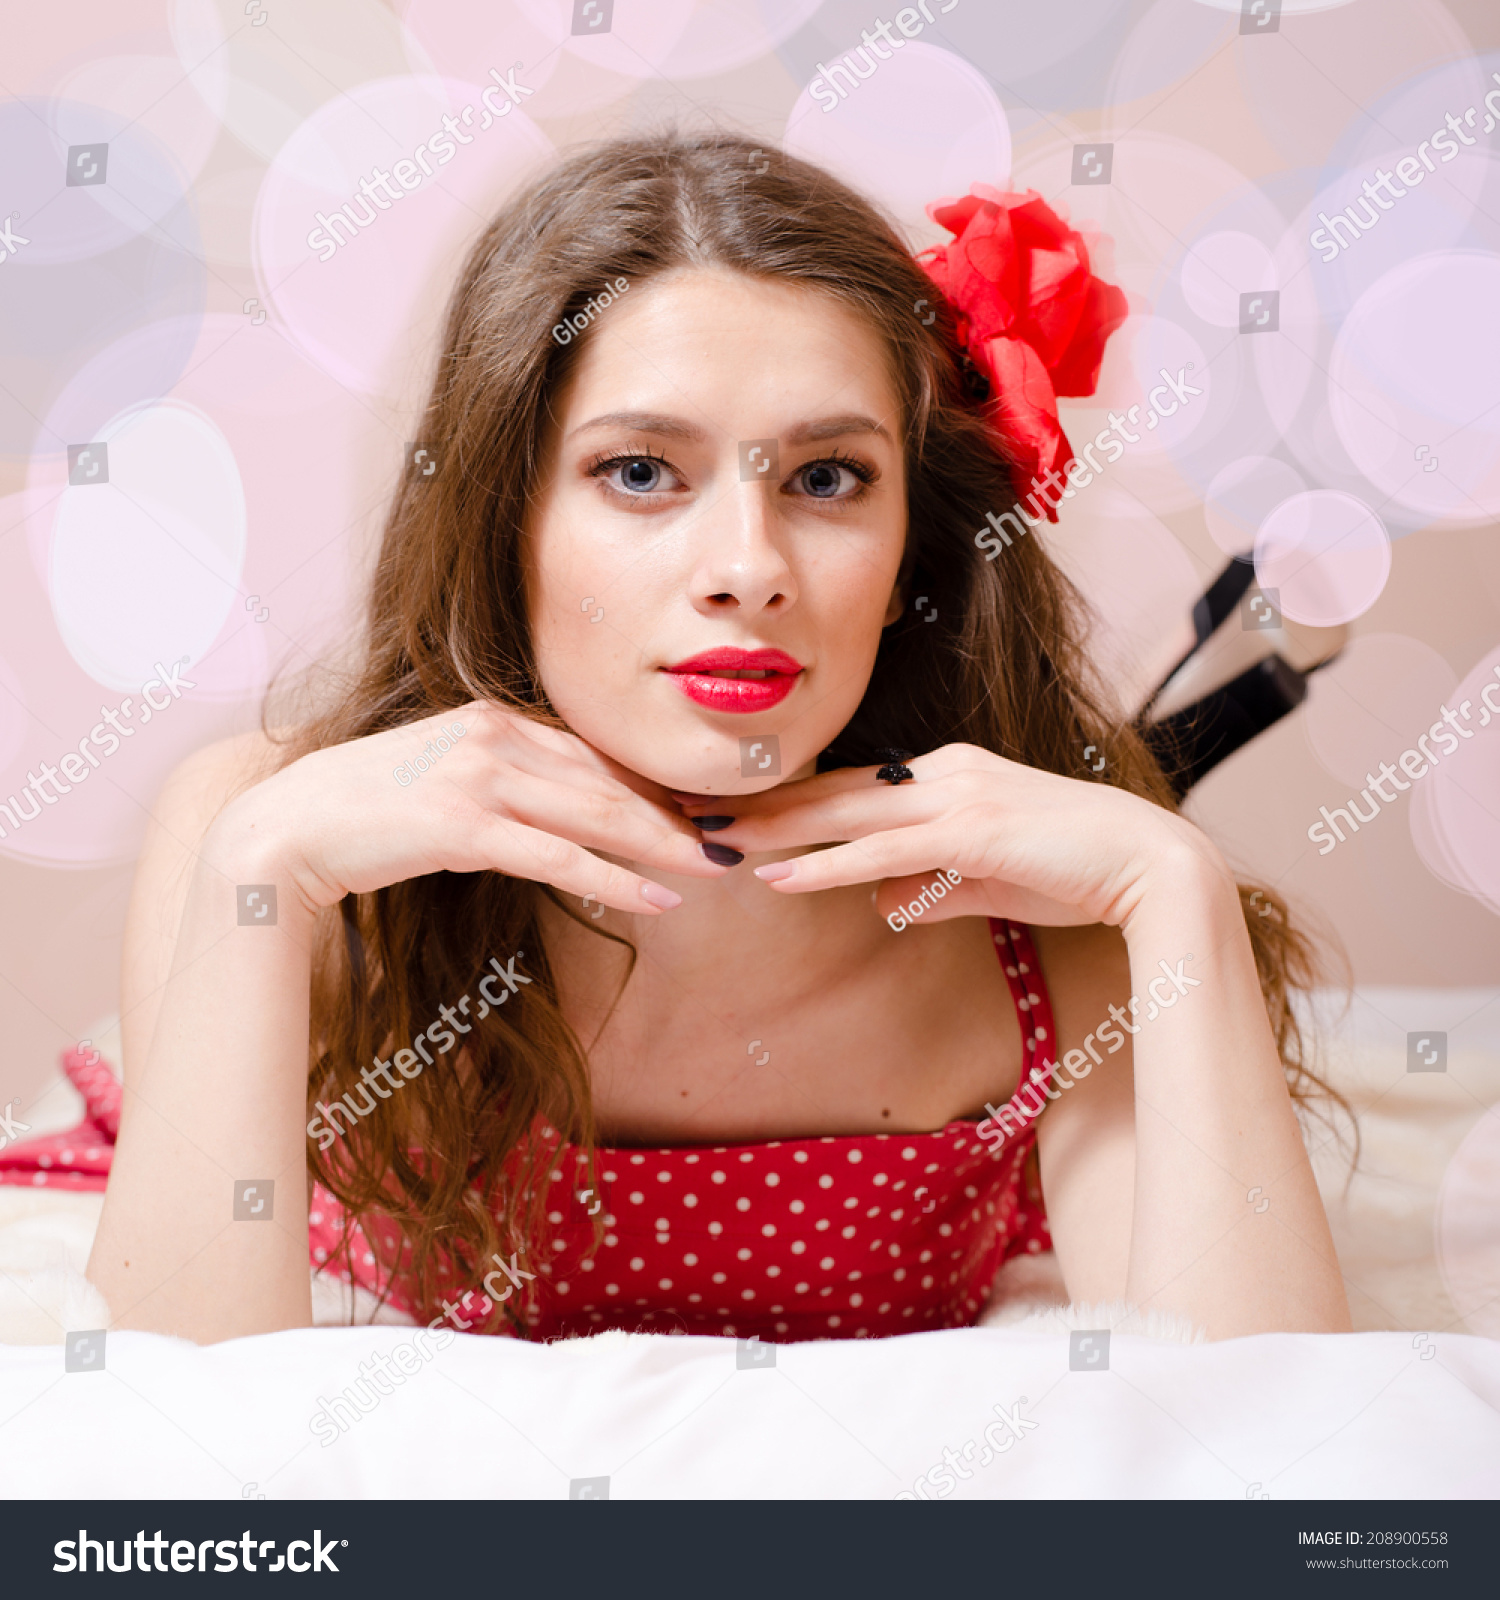 portrait of beautiful pinup girl with red lipstick having fun relaxing in  bed   looking at 55ef20c8e09